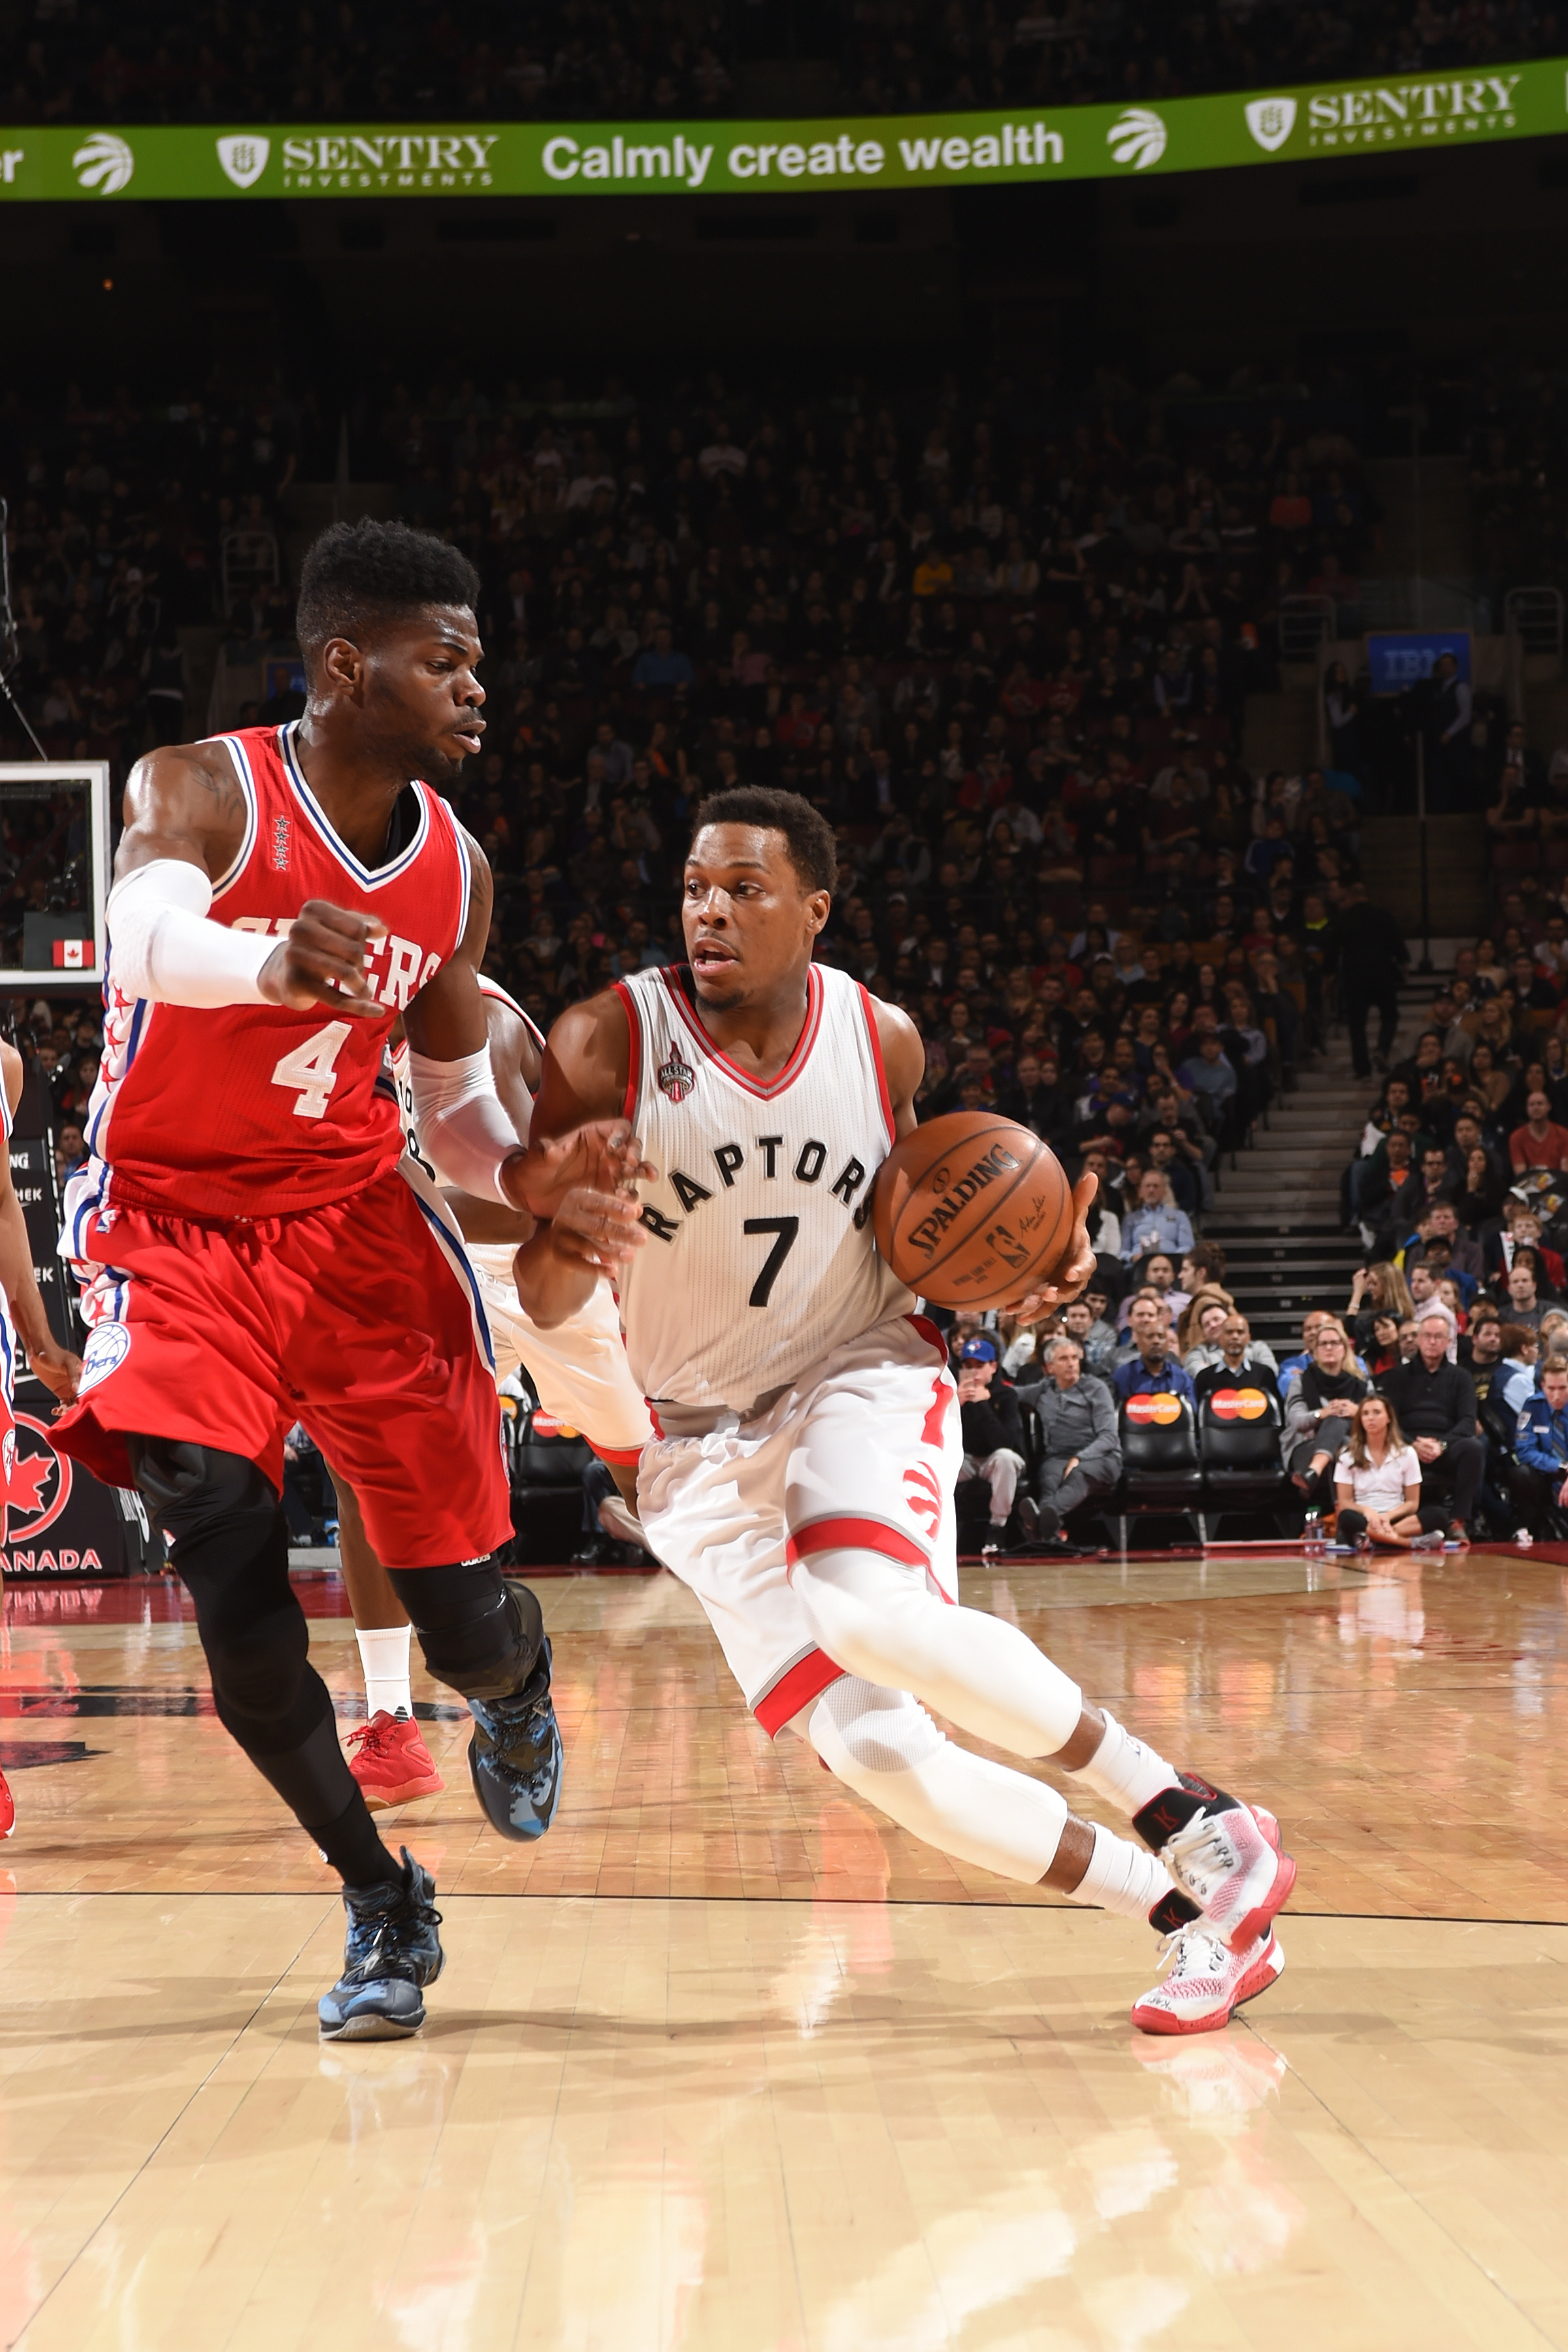 TORONTO, CANADA - APRIL 12: Kyle Lowry #7 of the Toronto Raptors ;htb ;against the Philadelphia 76ers on April 12, 2016 at the Air Canada Centre in Toronto, Ontario, Canada.  (Photo by Ron Turenne/NBAE via Getty Images)